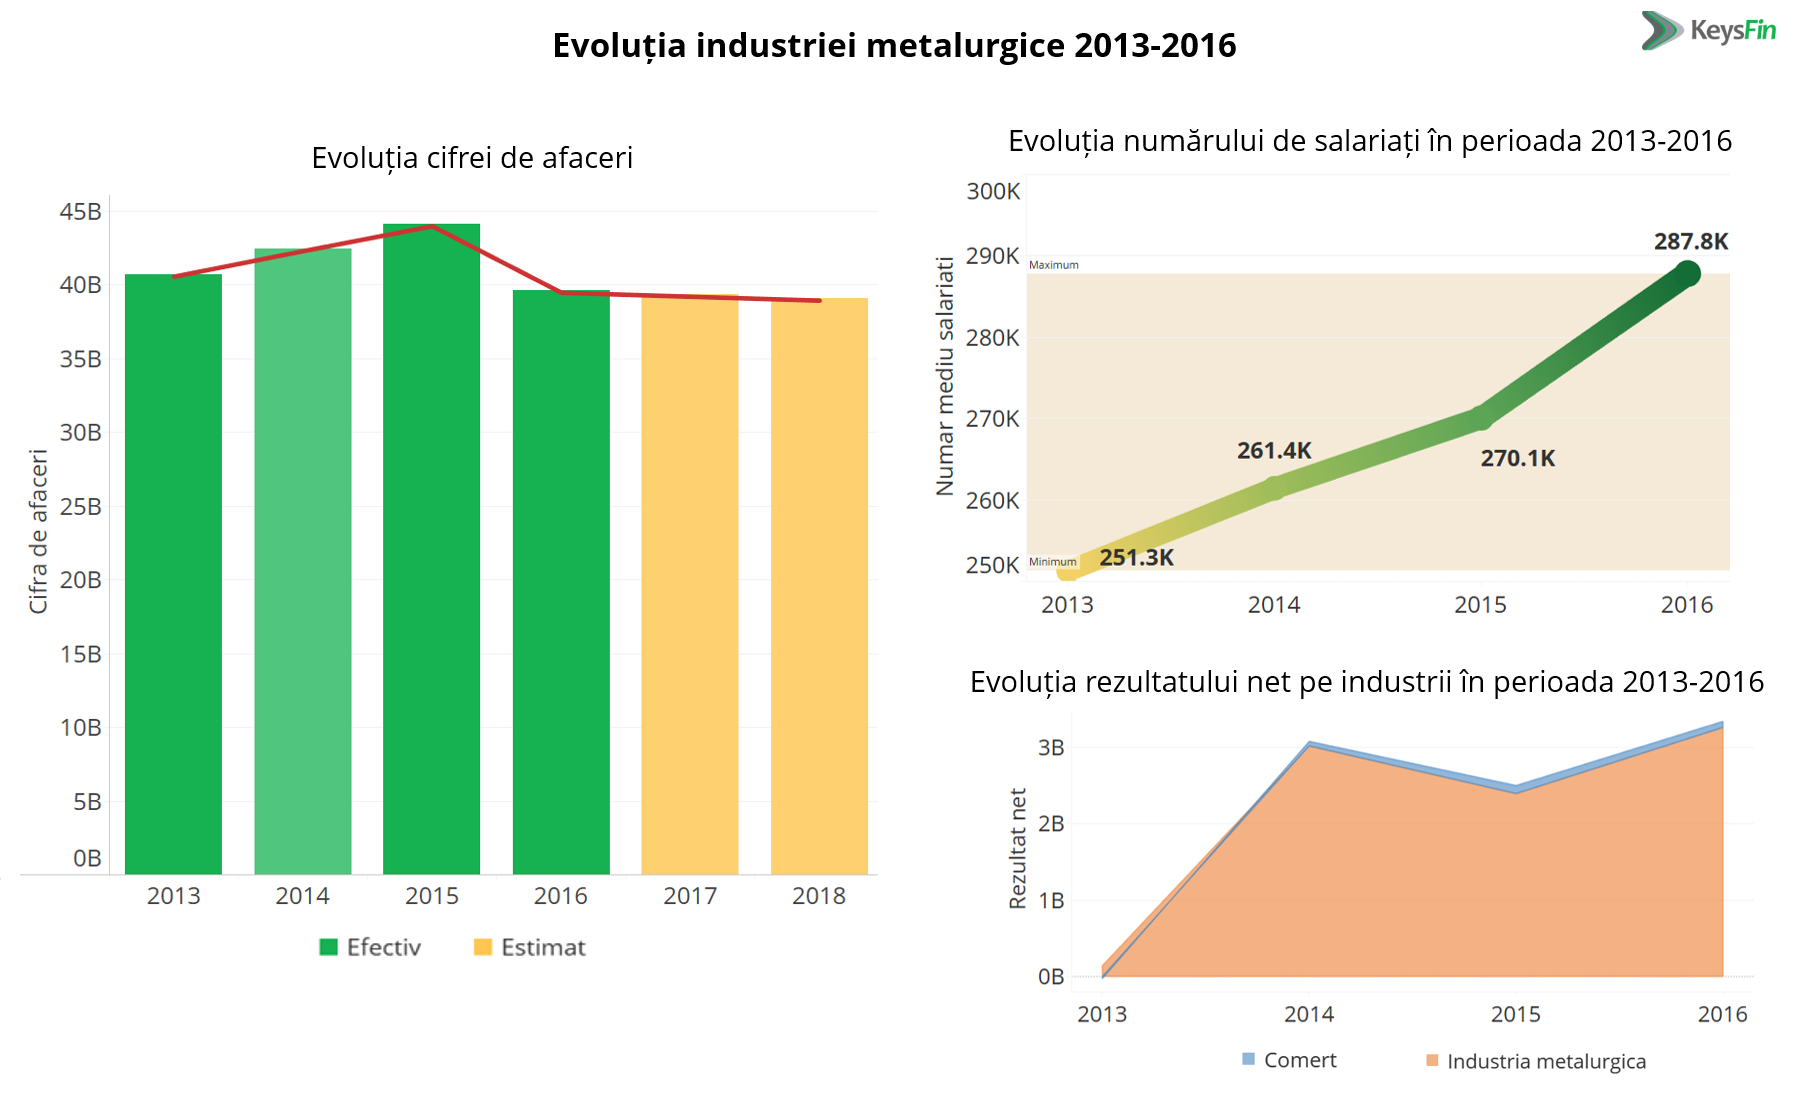 evolutie-industrie-metalurgica